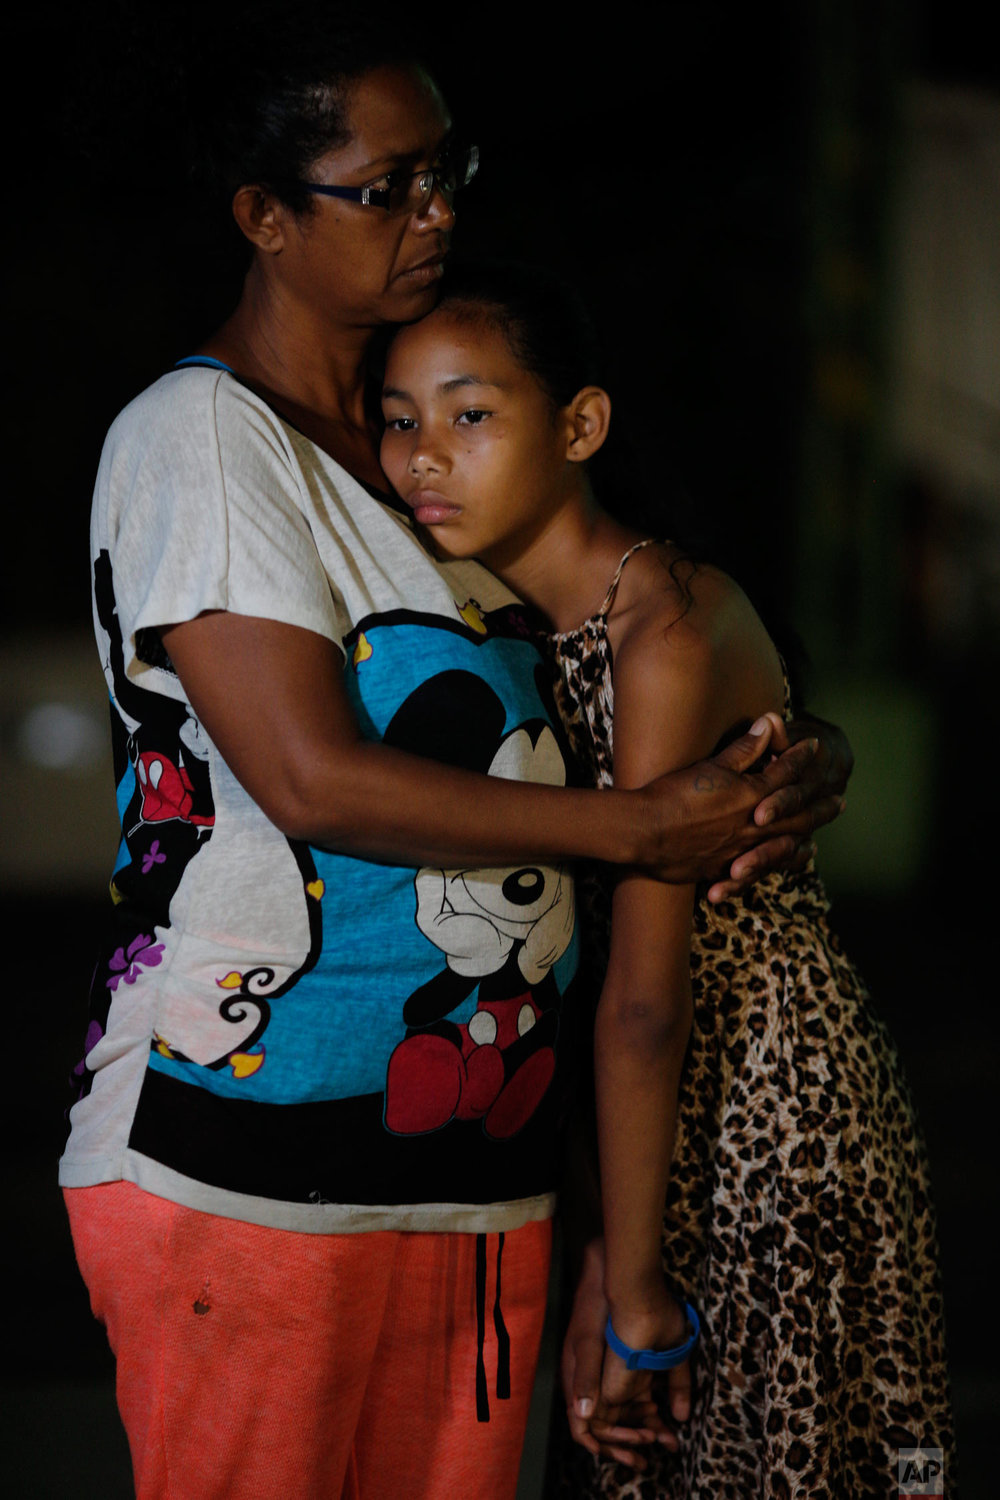 """In this Sept. 4, 2018 photo, Venezuelan Sandra Cadiz and her 10-year-old daughter Angelis embrace after spending the night outside a Biomax gas station in a remote stretch of farmland known only as """"Kilometer 17"""" in Santander state, Colombia, on their journey to Peru. A doctor had recently told Cadiz that her daughter was malnourished. The skinny 10-year-old was at least 10 pounds underweight and only eating twice a day. (AP Photo/Ariana Cubillos)"""